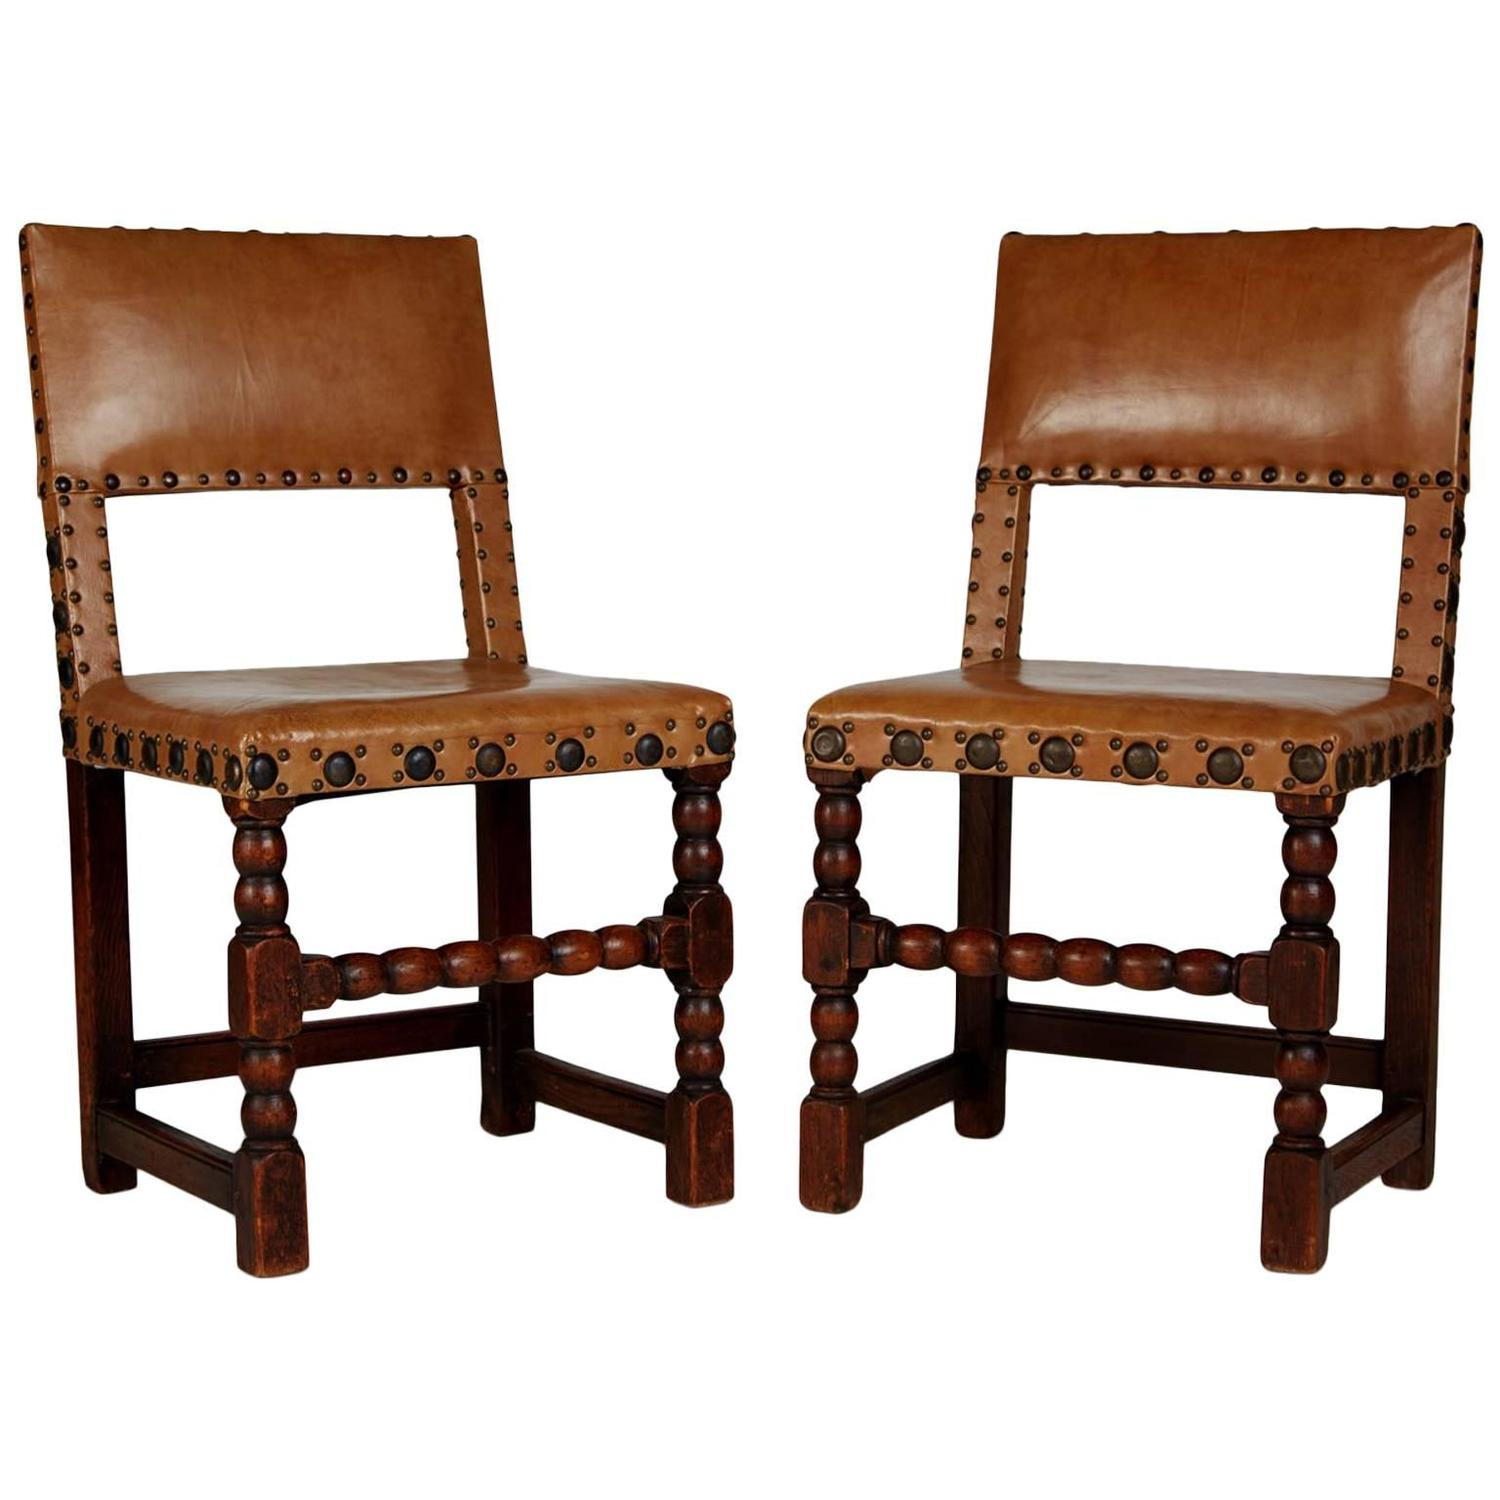 Rare set of twelve victorian solid oak leather antique chairs empire - English Cromwellian Tan Leather Oak Side Chairs Circa 1860